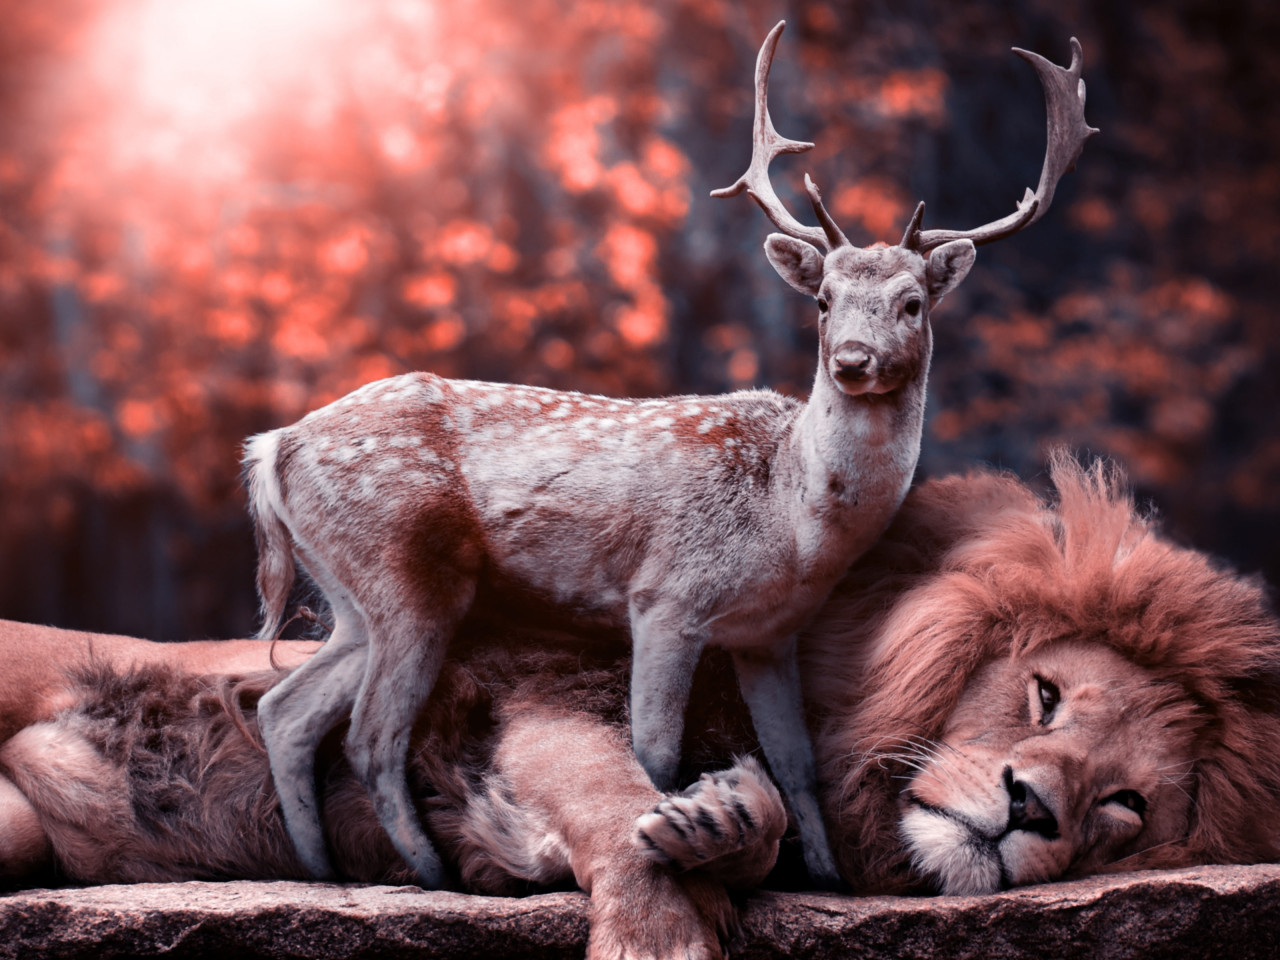 The lion and the deer wallpaper 1280x960